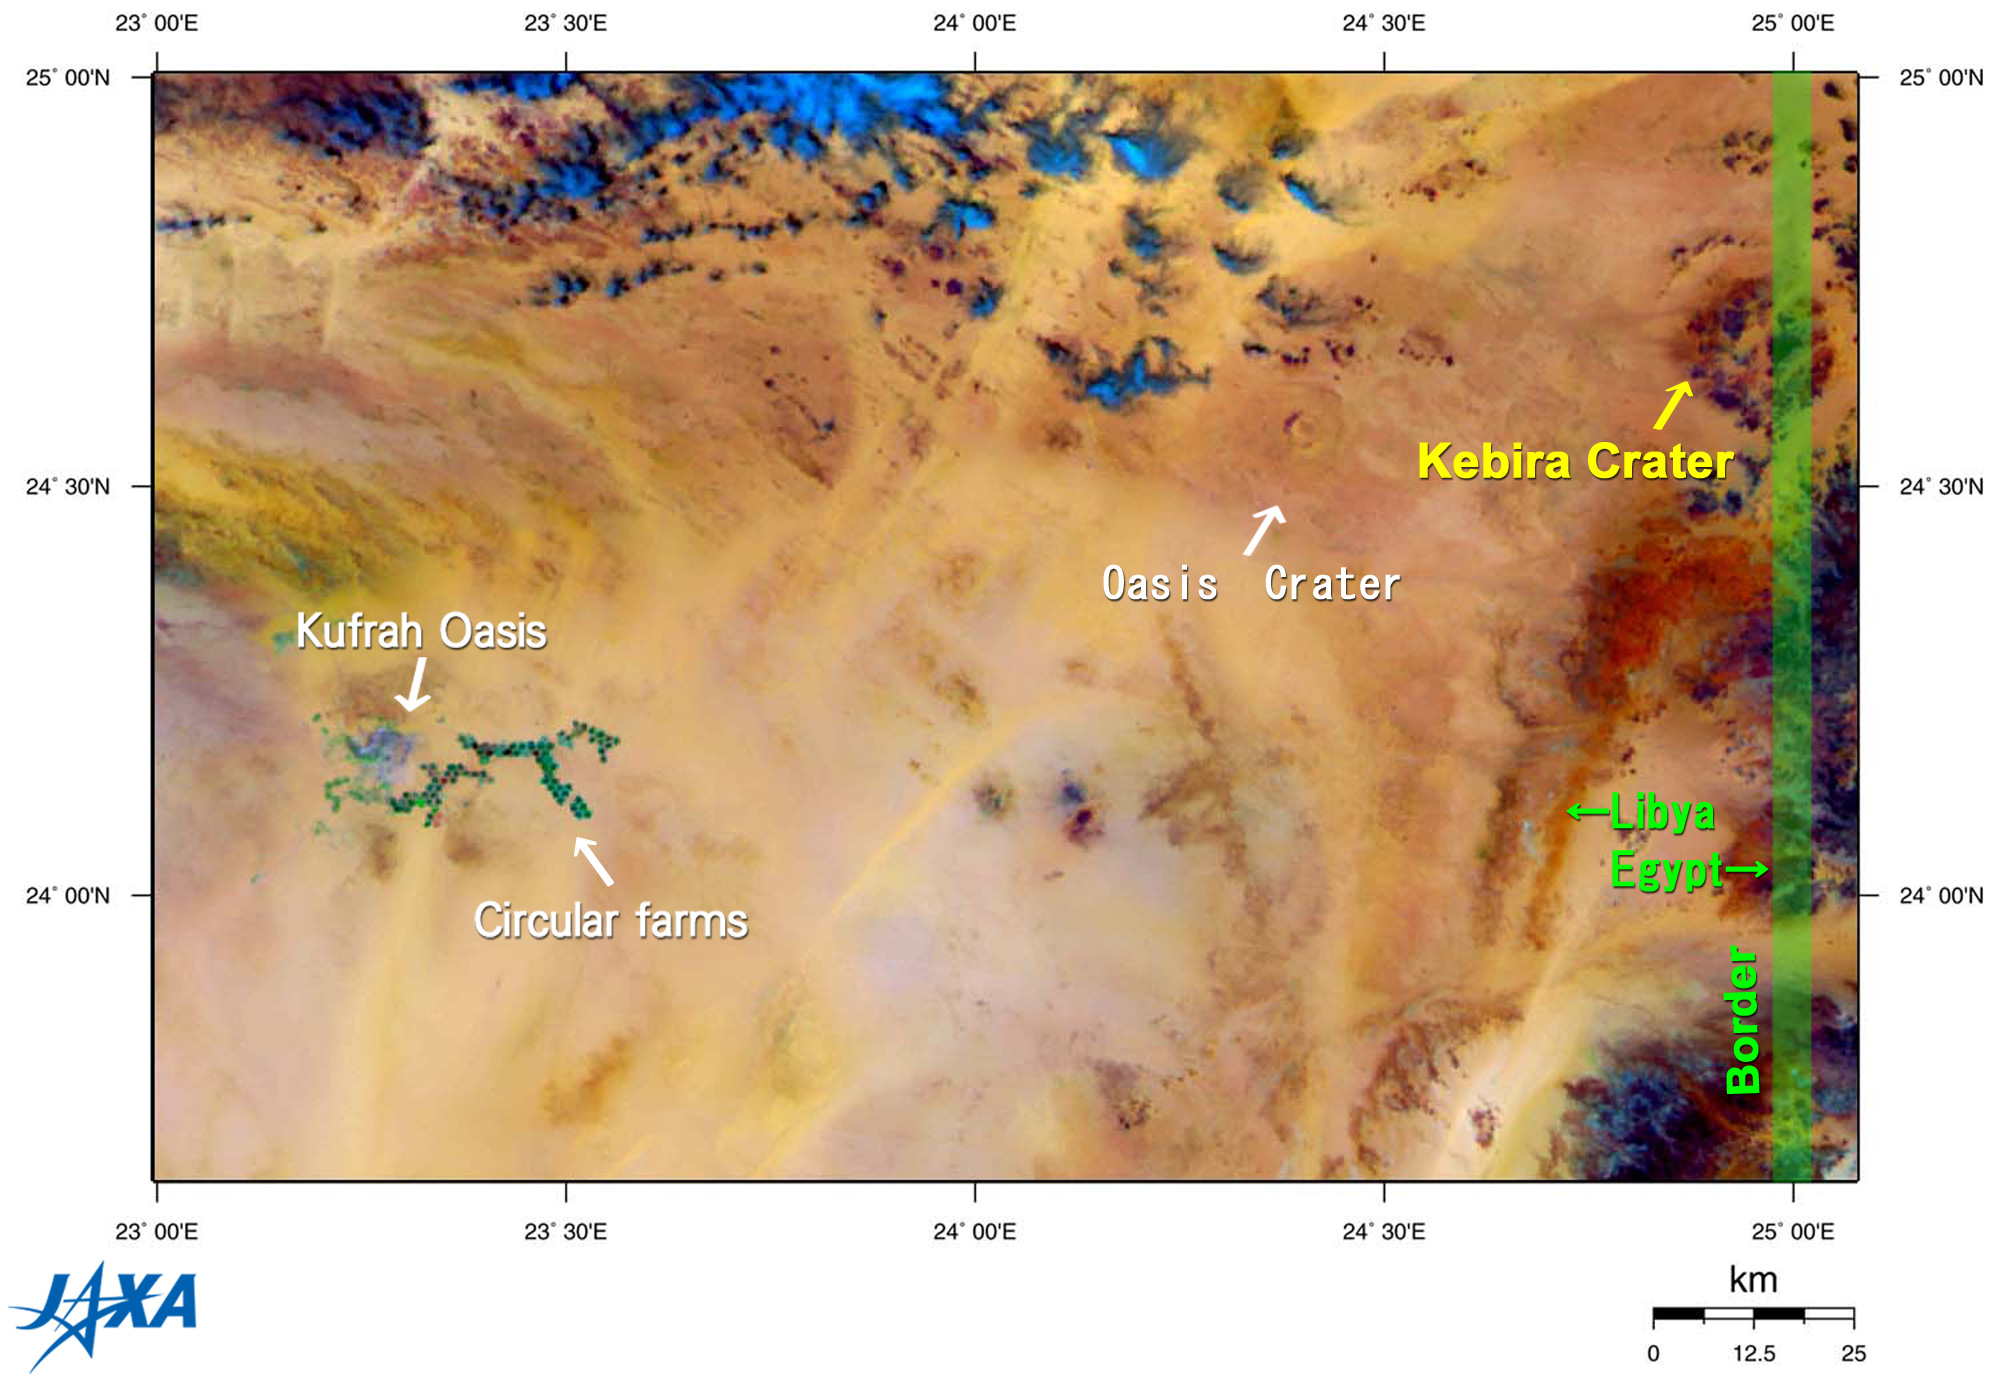 Kebira Crater Mystery in Sahara Desert | 2008 | JAXA Earth ... on maps of animals, maps of movies, maps of western, maps of nature, maps of god, maps of everything, maps of london, maps of hollywood, maps of fun, maps of florida, maps of heaven, maps of sports, maps of castle,